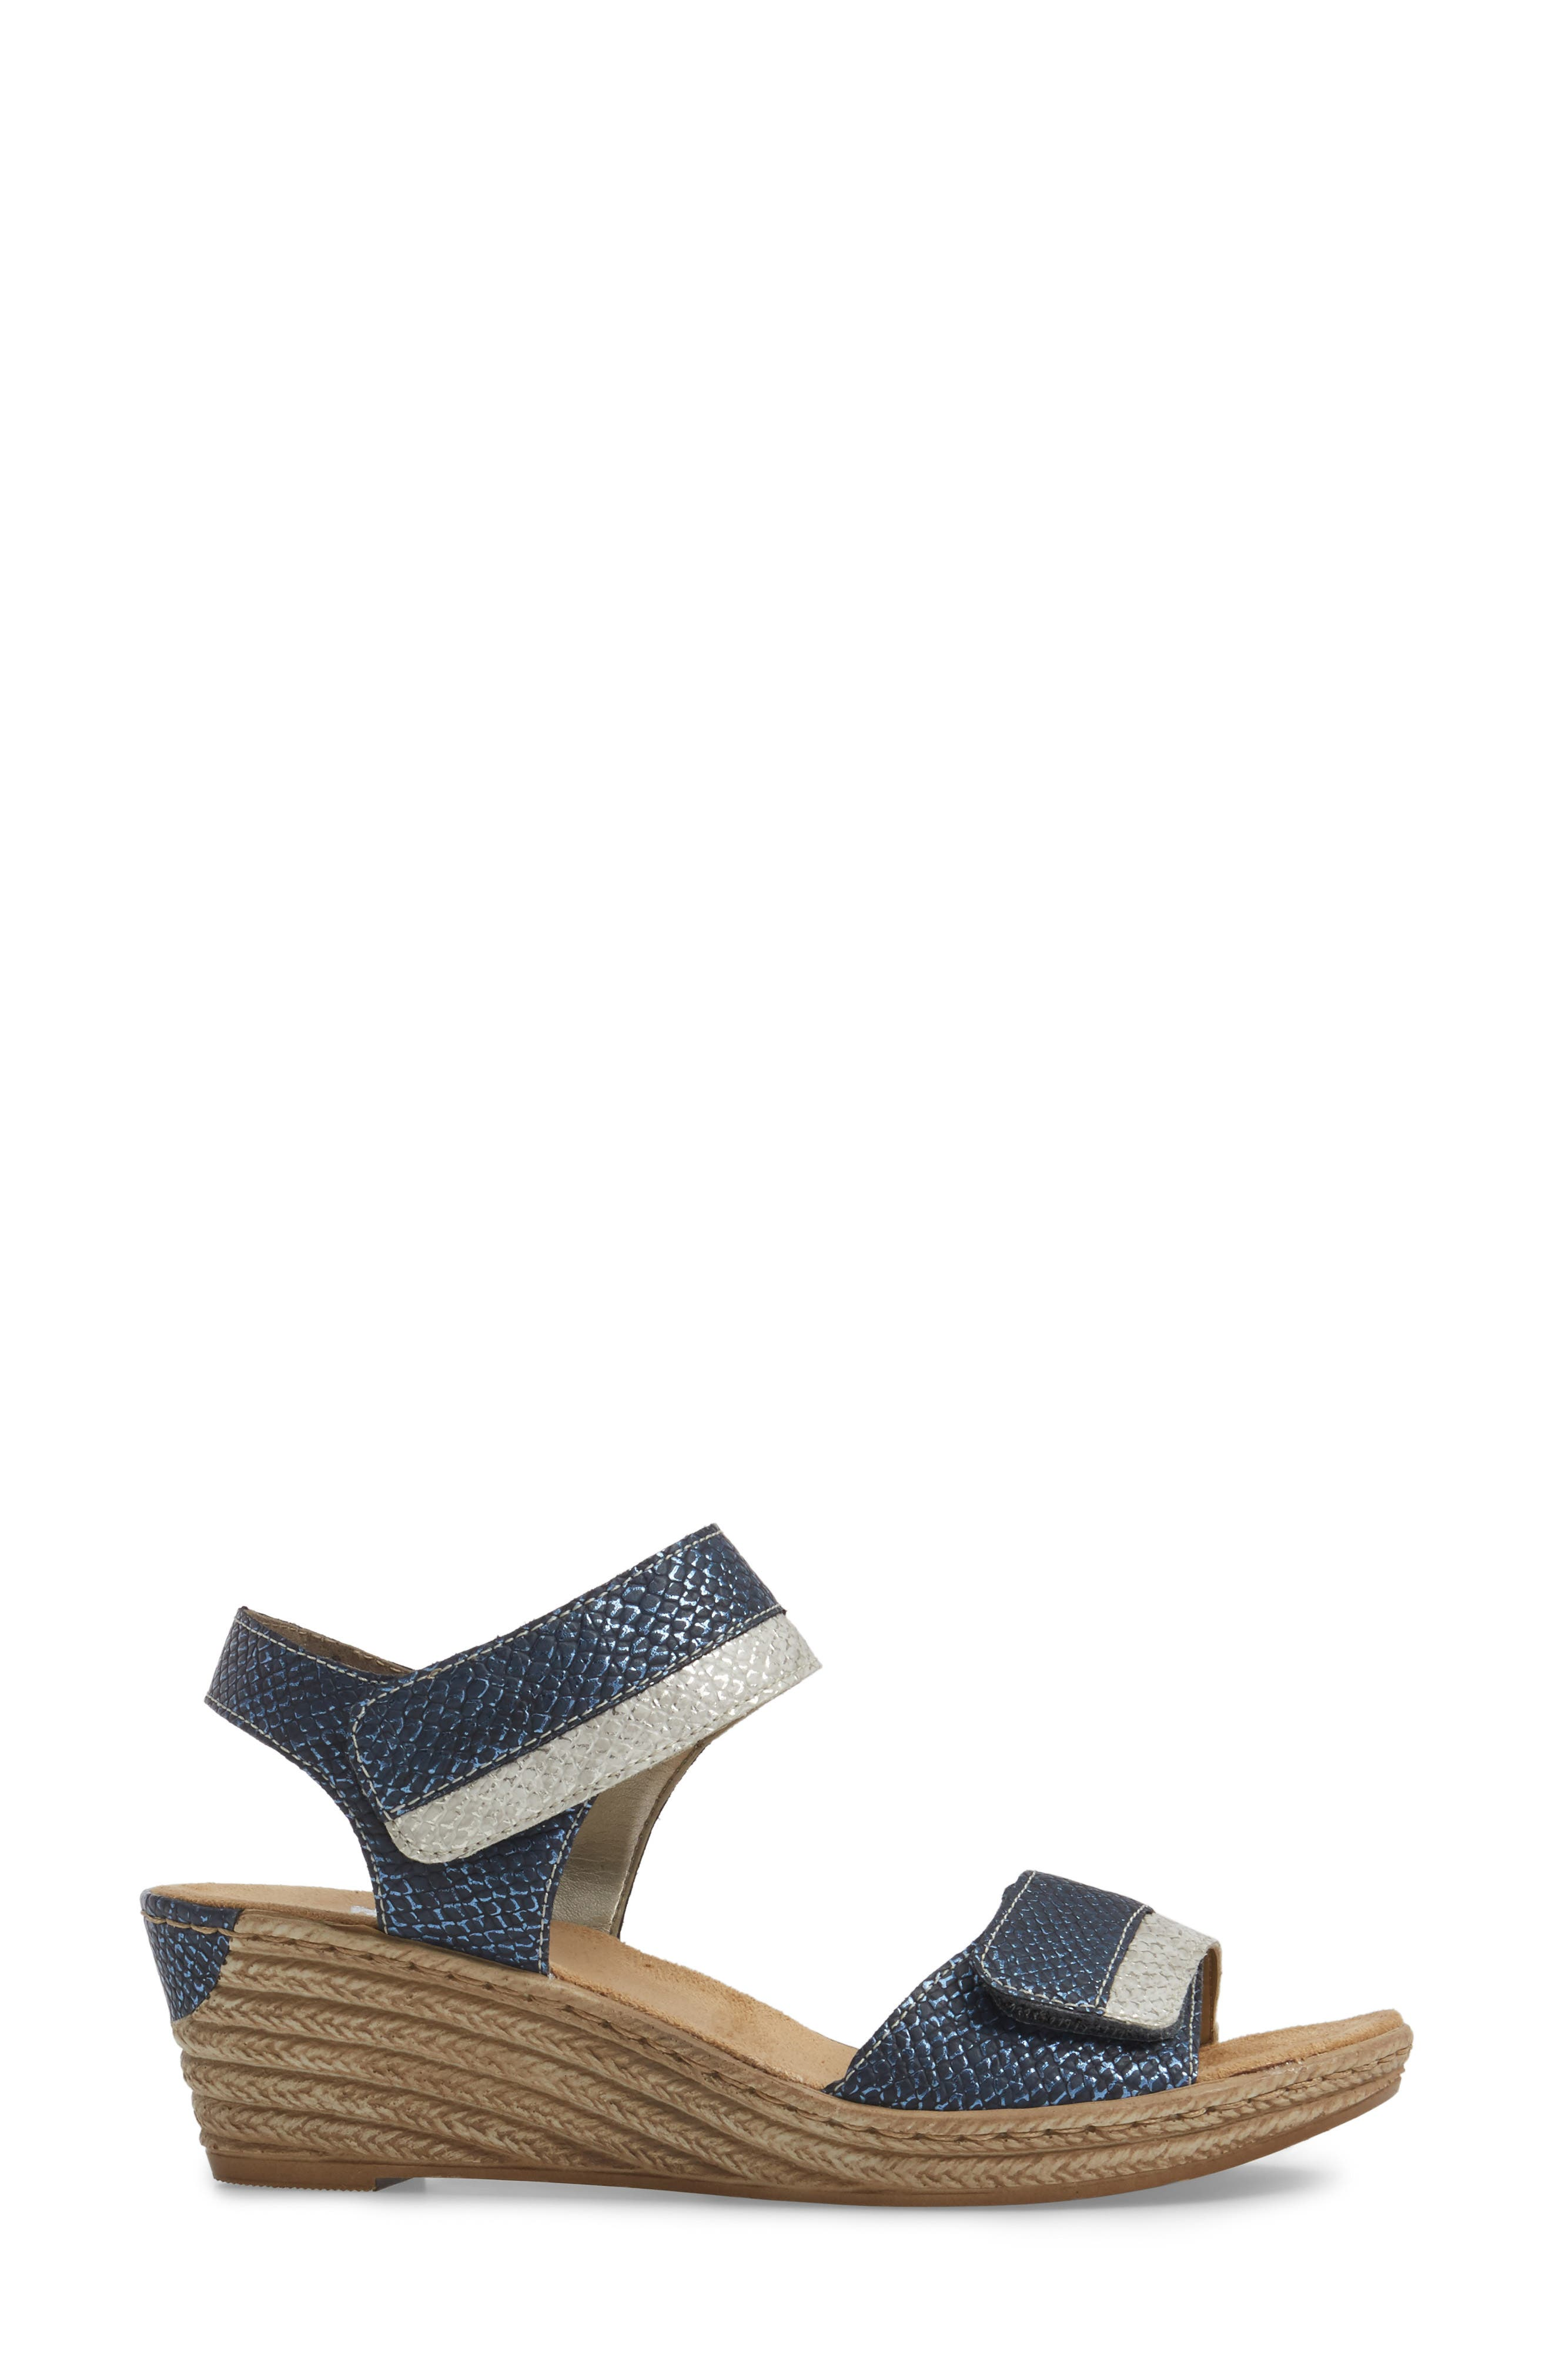 Alternate Image 3  - Rieker Antistress Fanni 70 Wedge Sandal (Women)